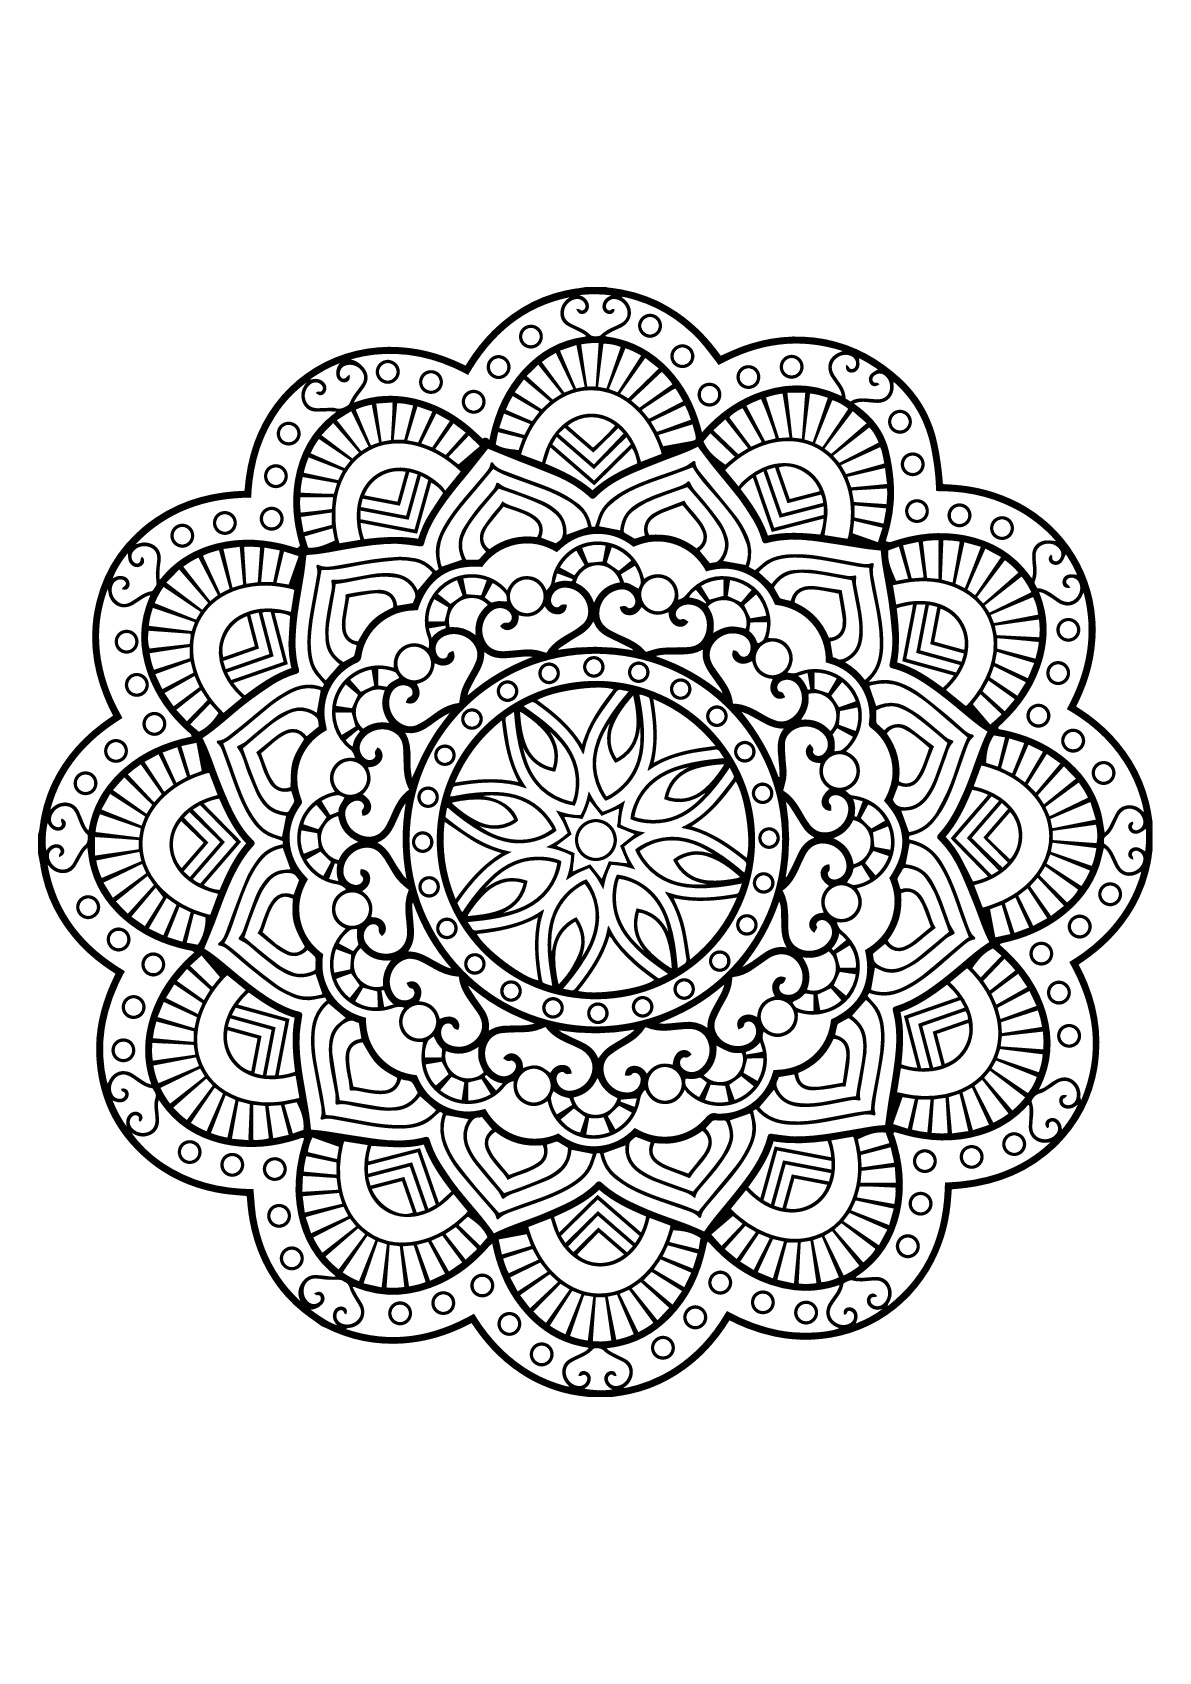 mandala coloring pages for adults free mandala coloring pages getcoloringpagescom adults mandala for free pages coloring